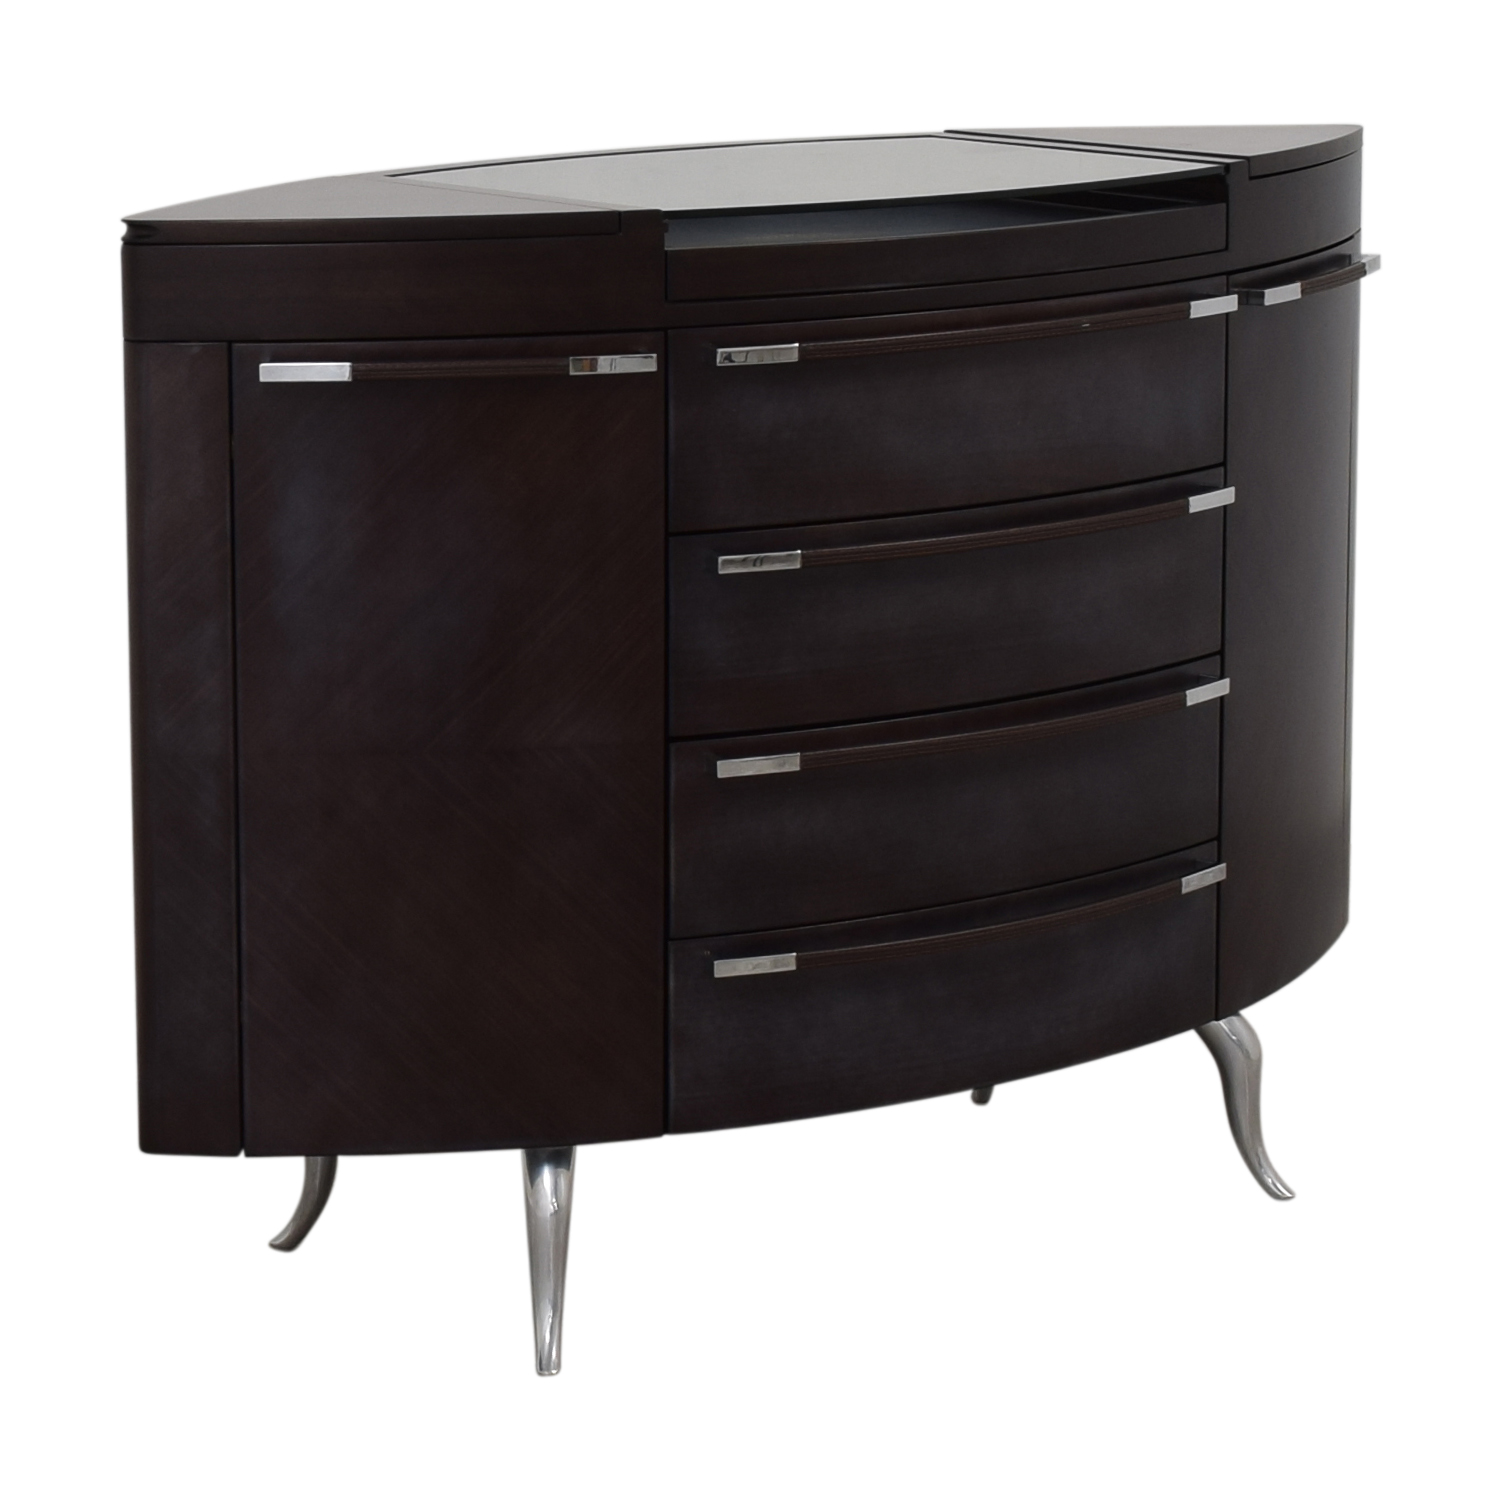 Maurice Villency Maurice Villency Oval Elliptical Chest of Drawers nj